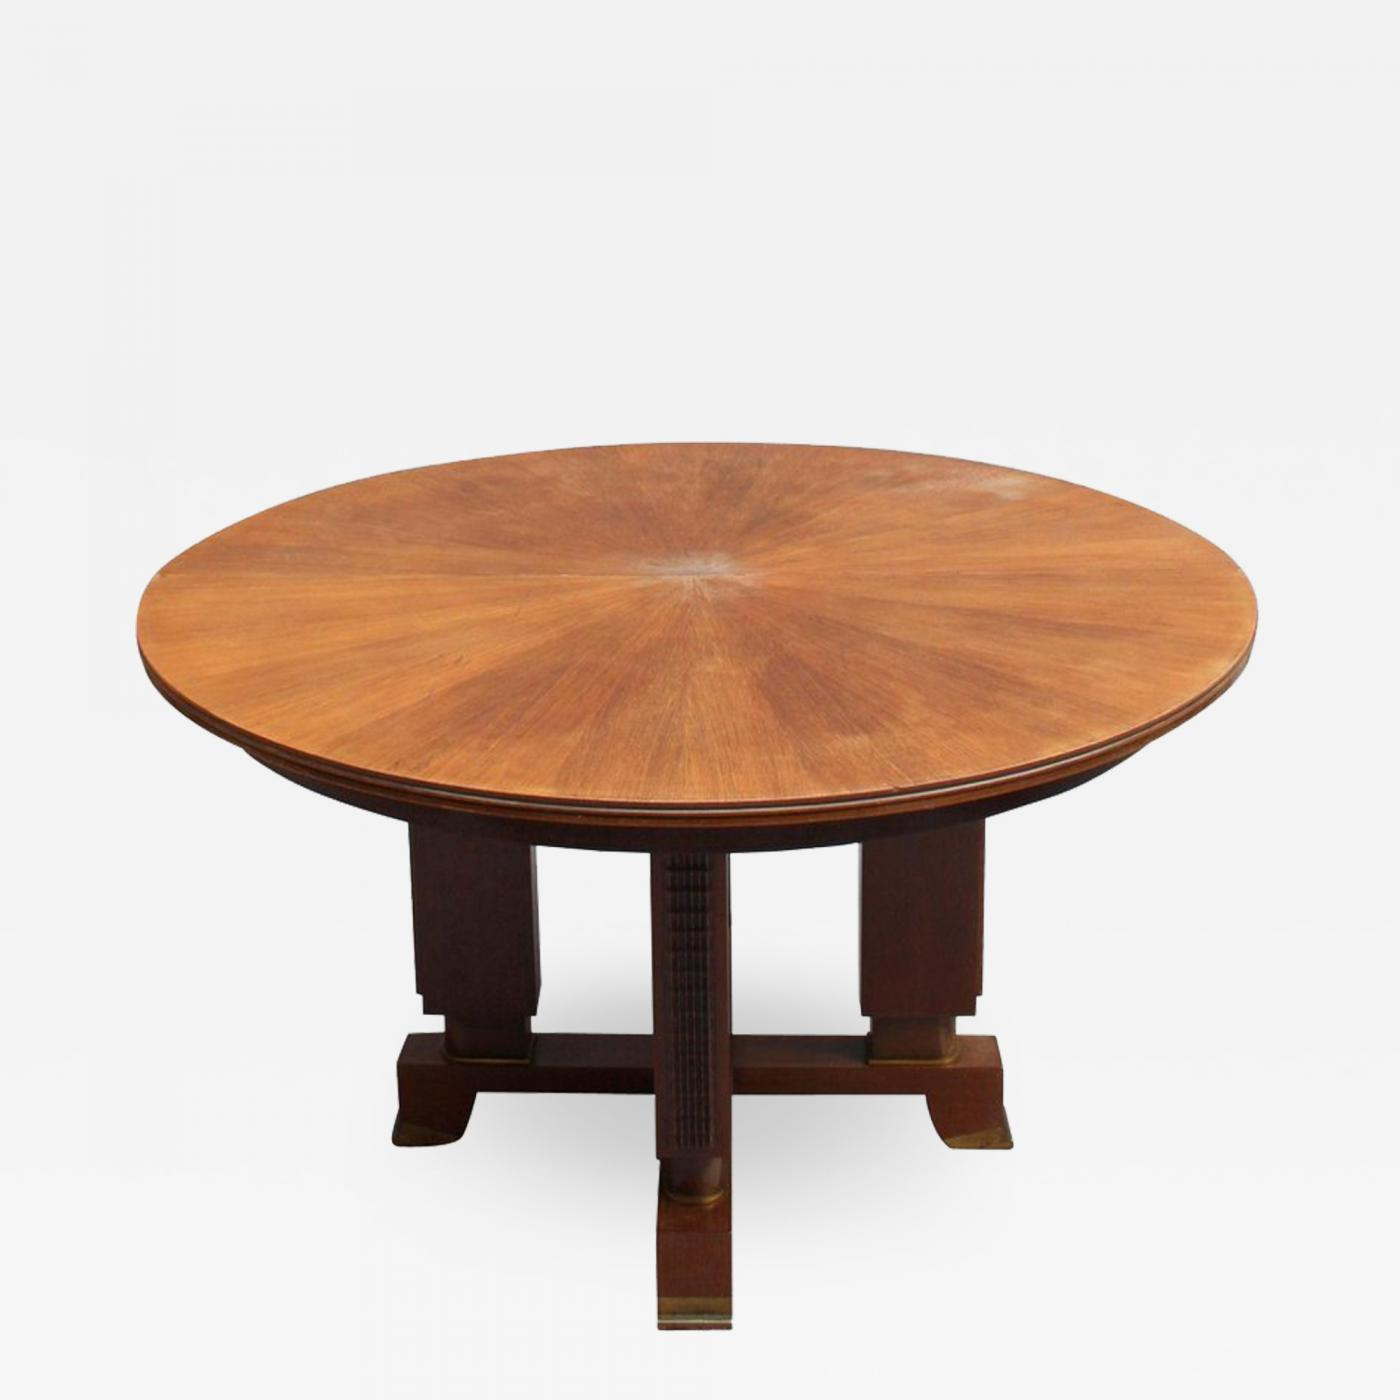 Jules Leleu - FINE FRENCH ART DECO EXTENDABLE ROUND DINING TABLE BY JULES  LELEU